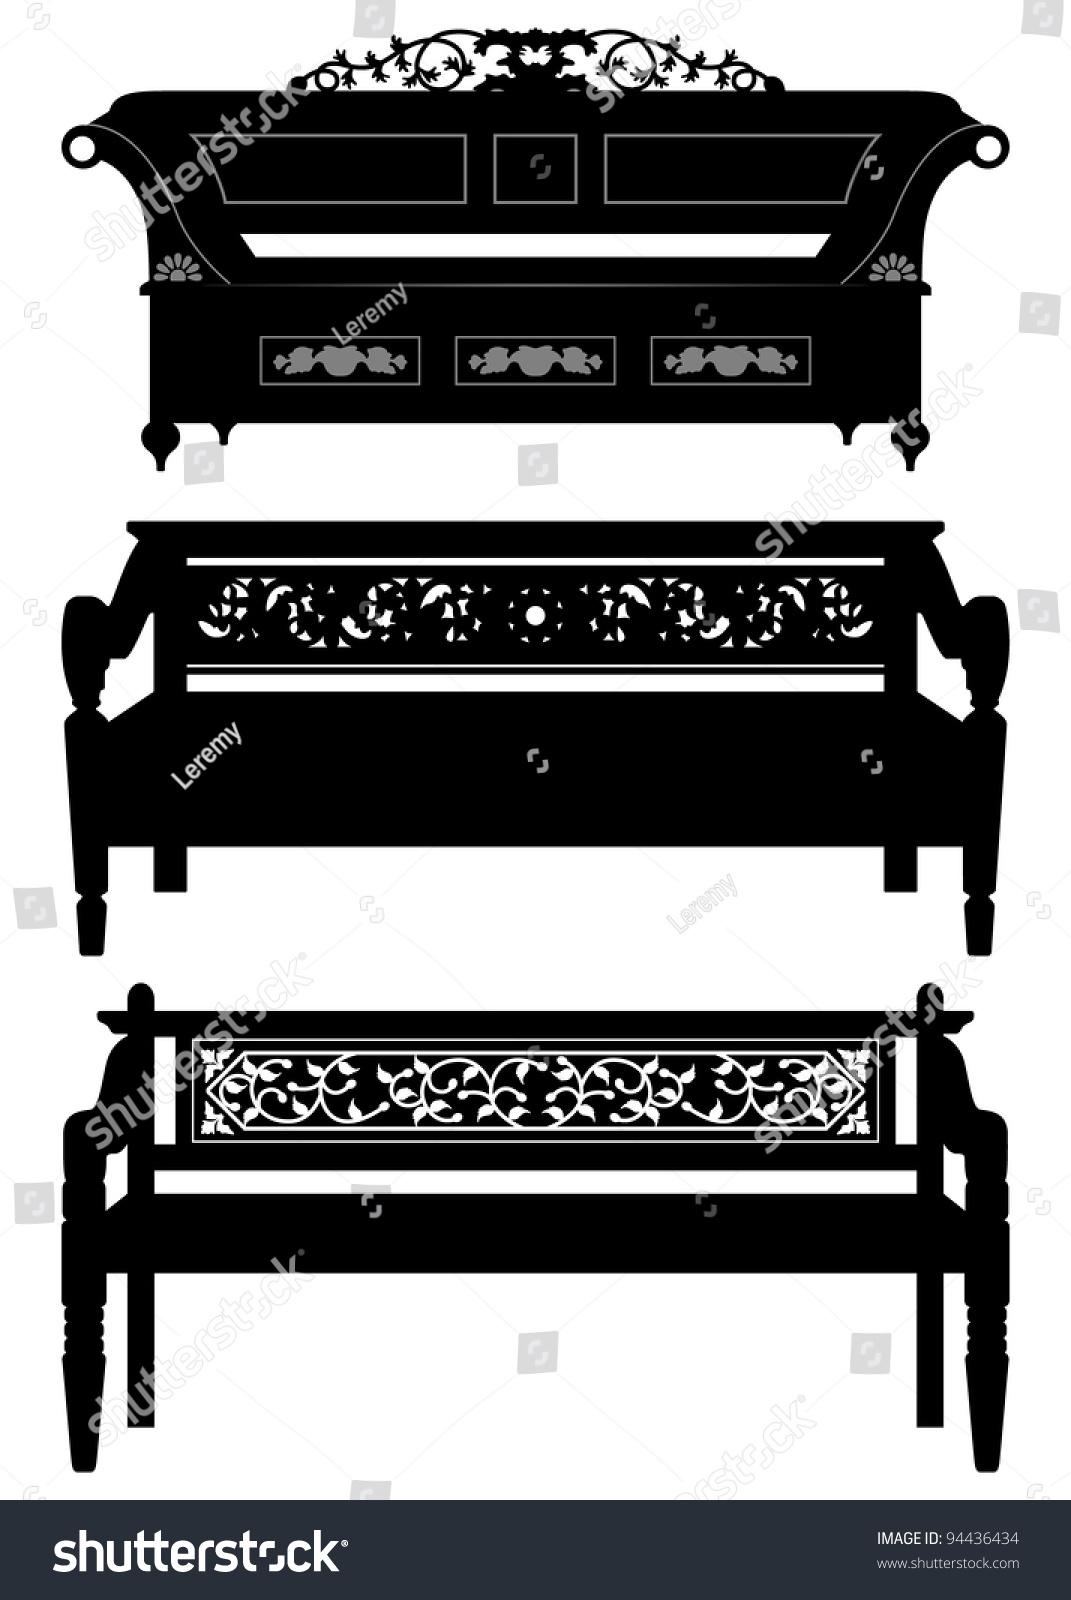 Antique chair silhouette - Asian Antique Chair Bench Furniture In Silhouette Preview Save To A Lightbox